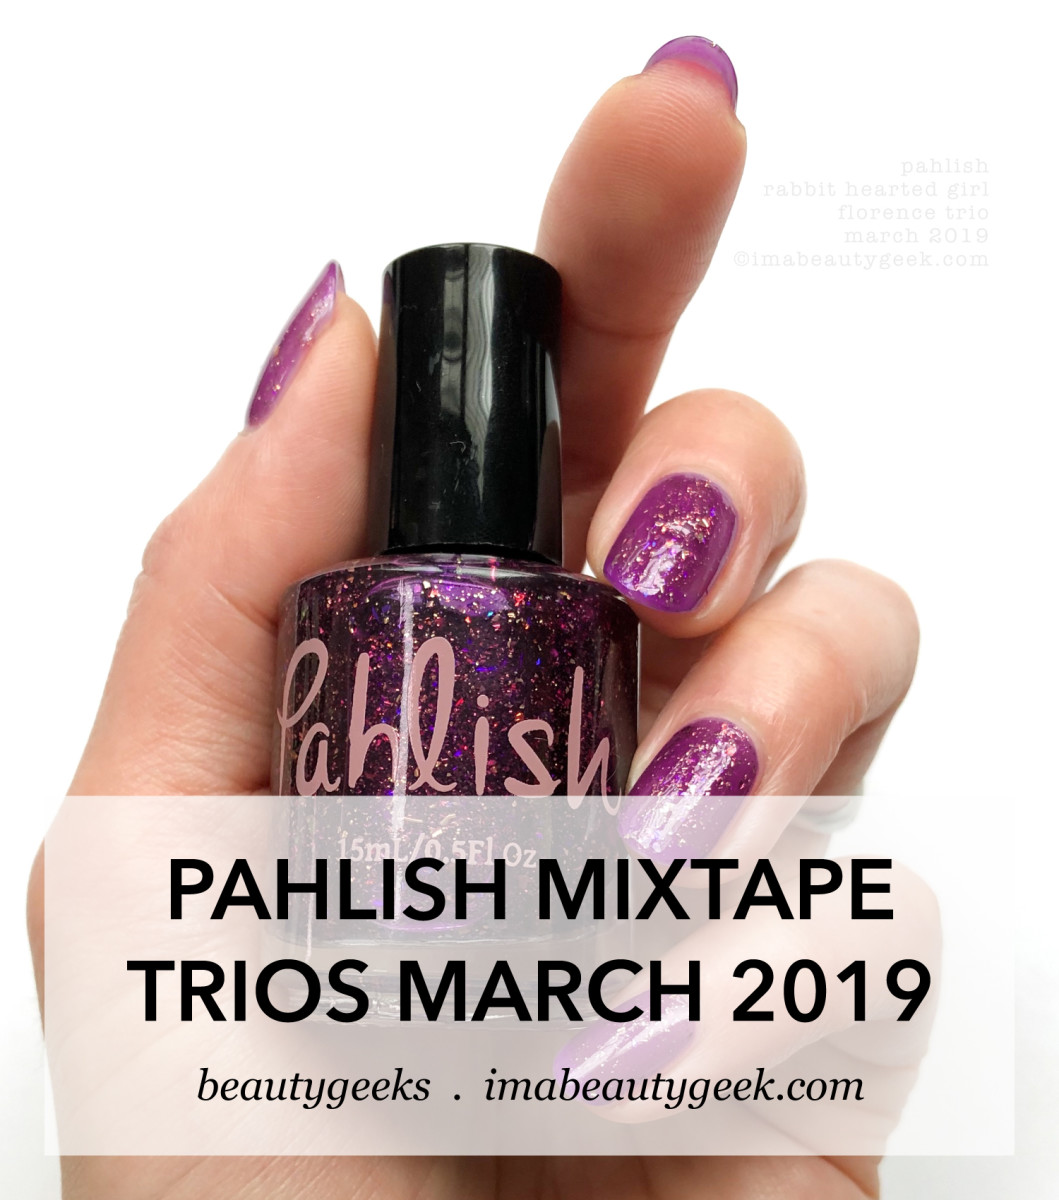 Pahlish Rabbit Hearted Girl _ Mixtape Trios Swatches March 2019